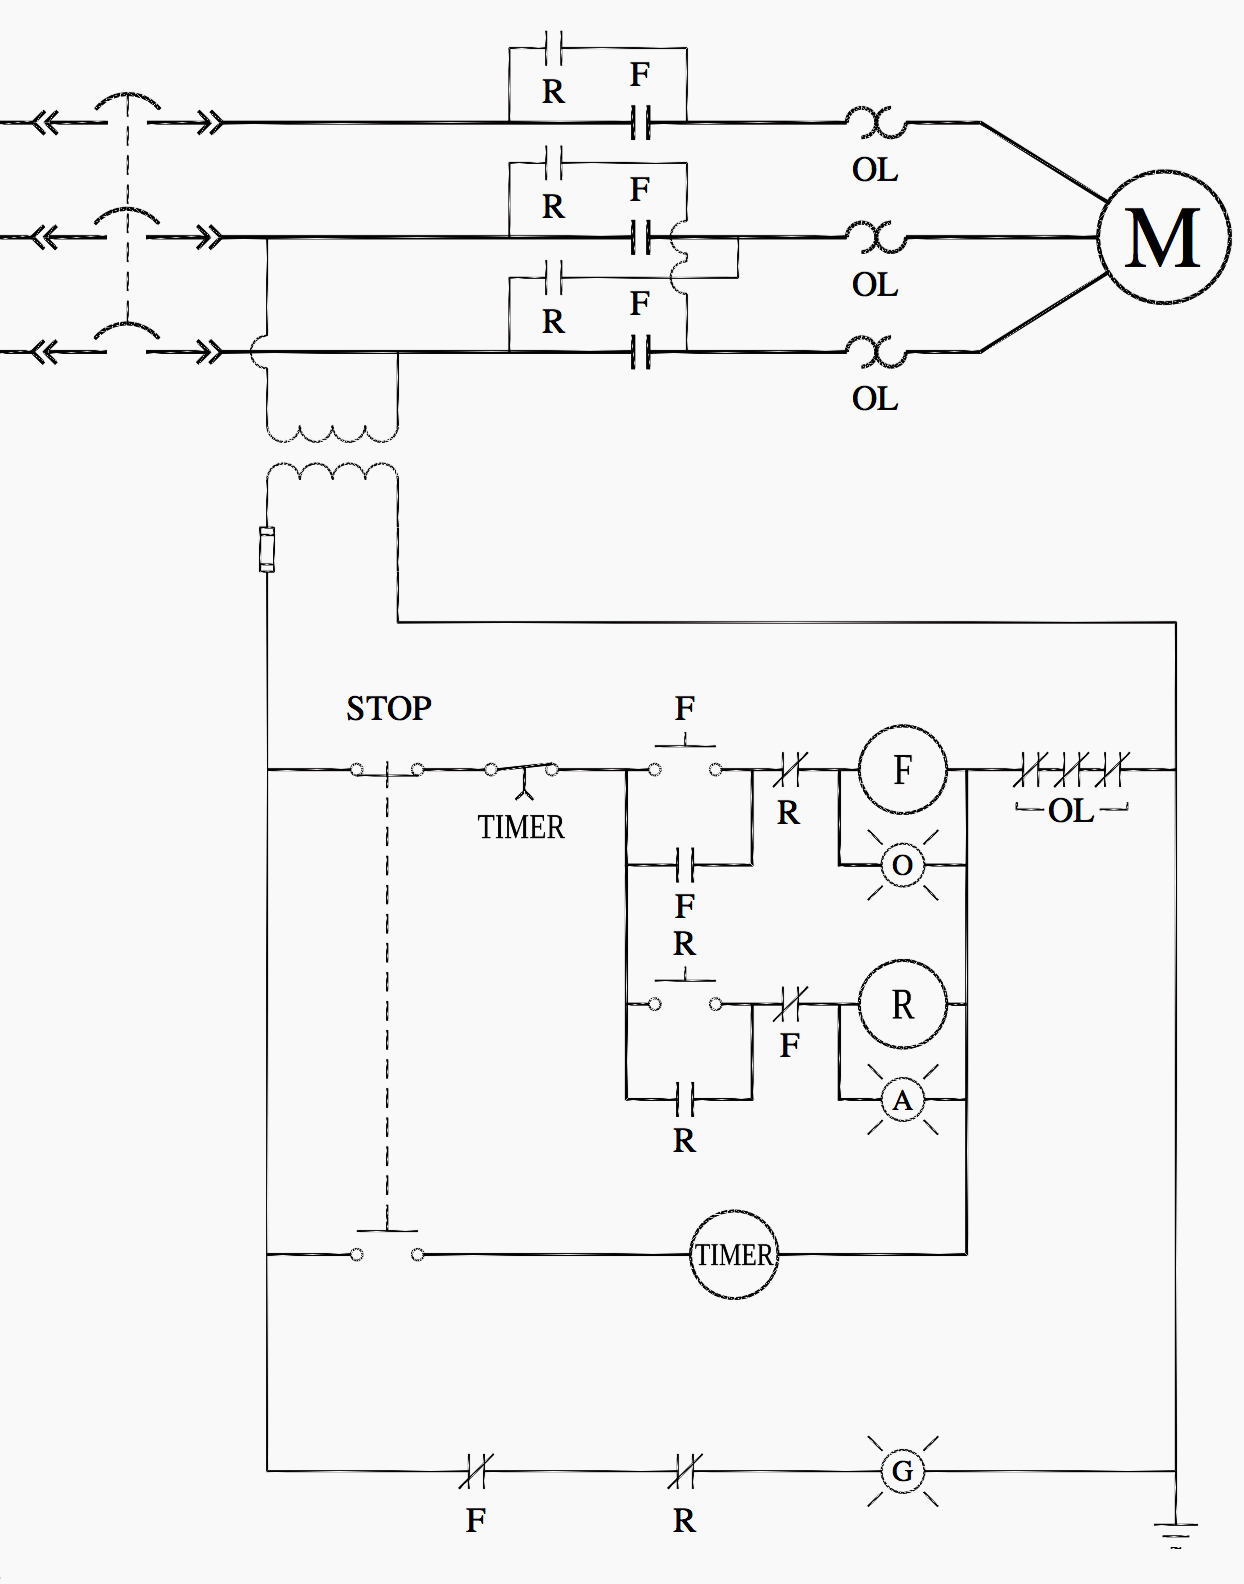 anti plugging circuit automation in 2019 ladder logic on hand drill circuit diagram on simple motor control ladder diagram [ 1244 x 1584 Pixel ]